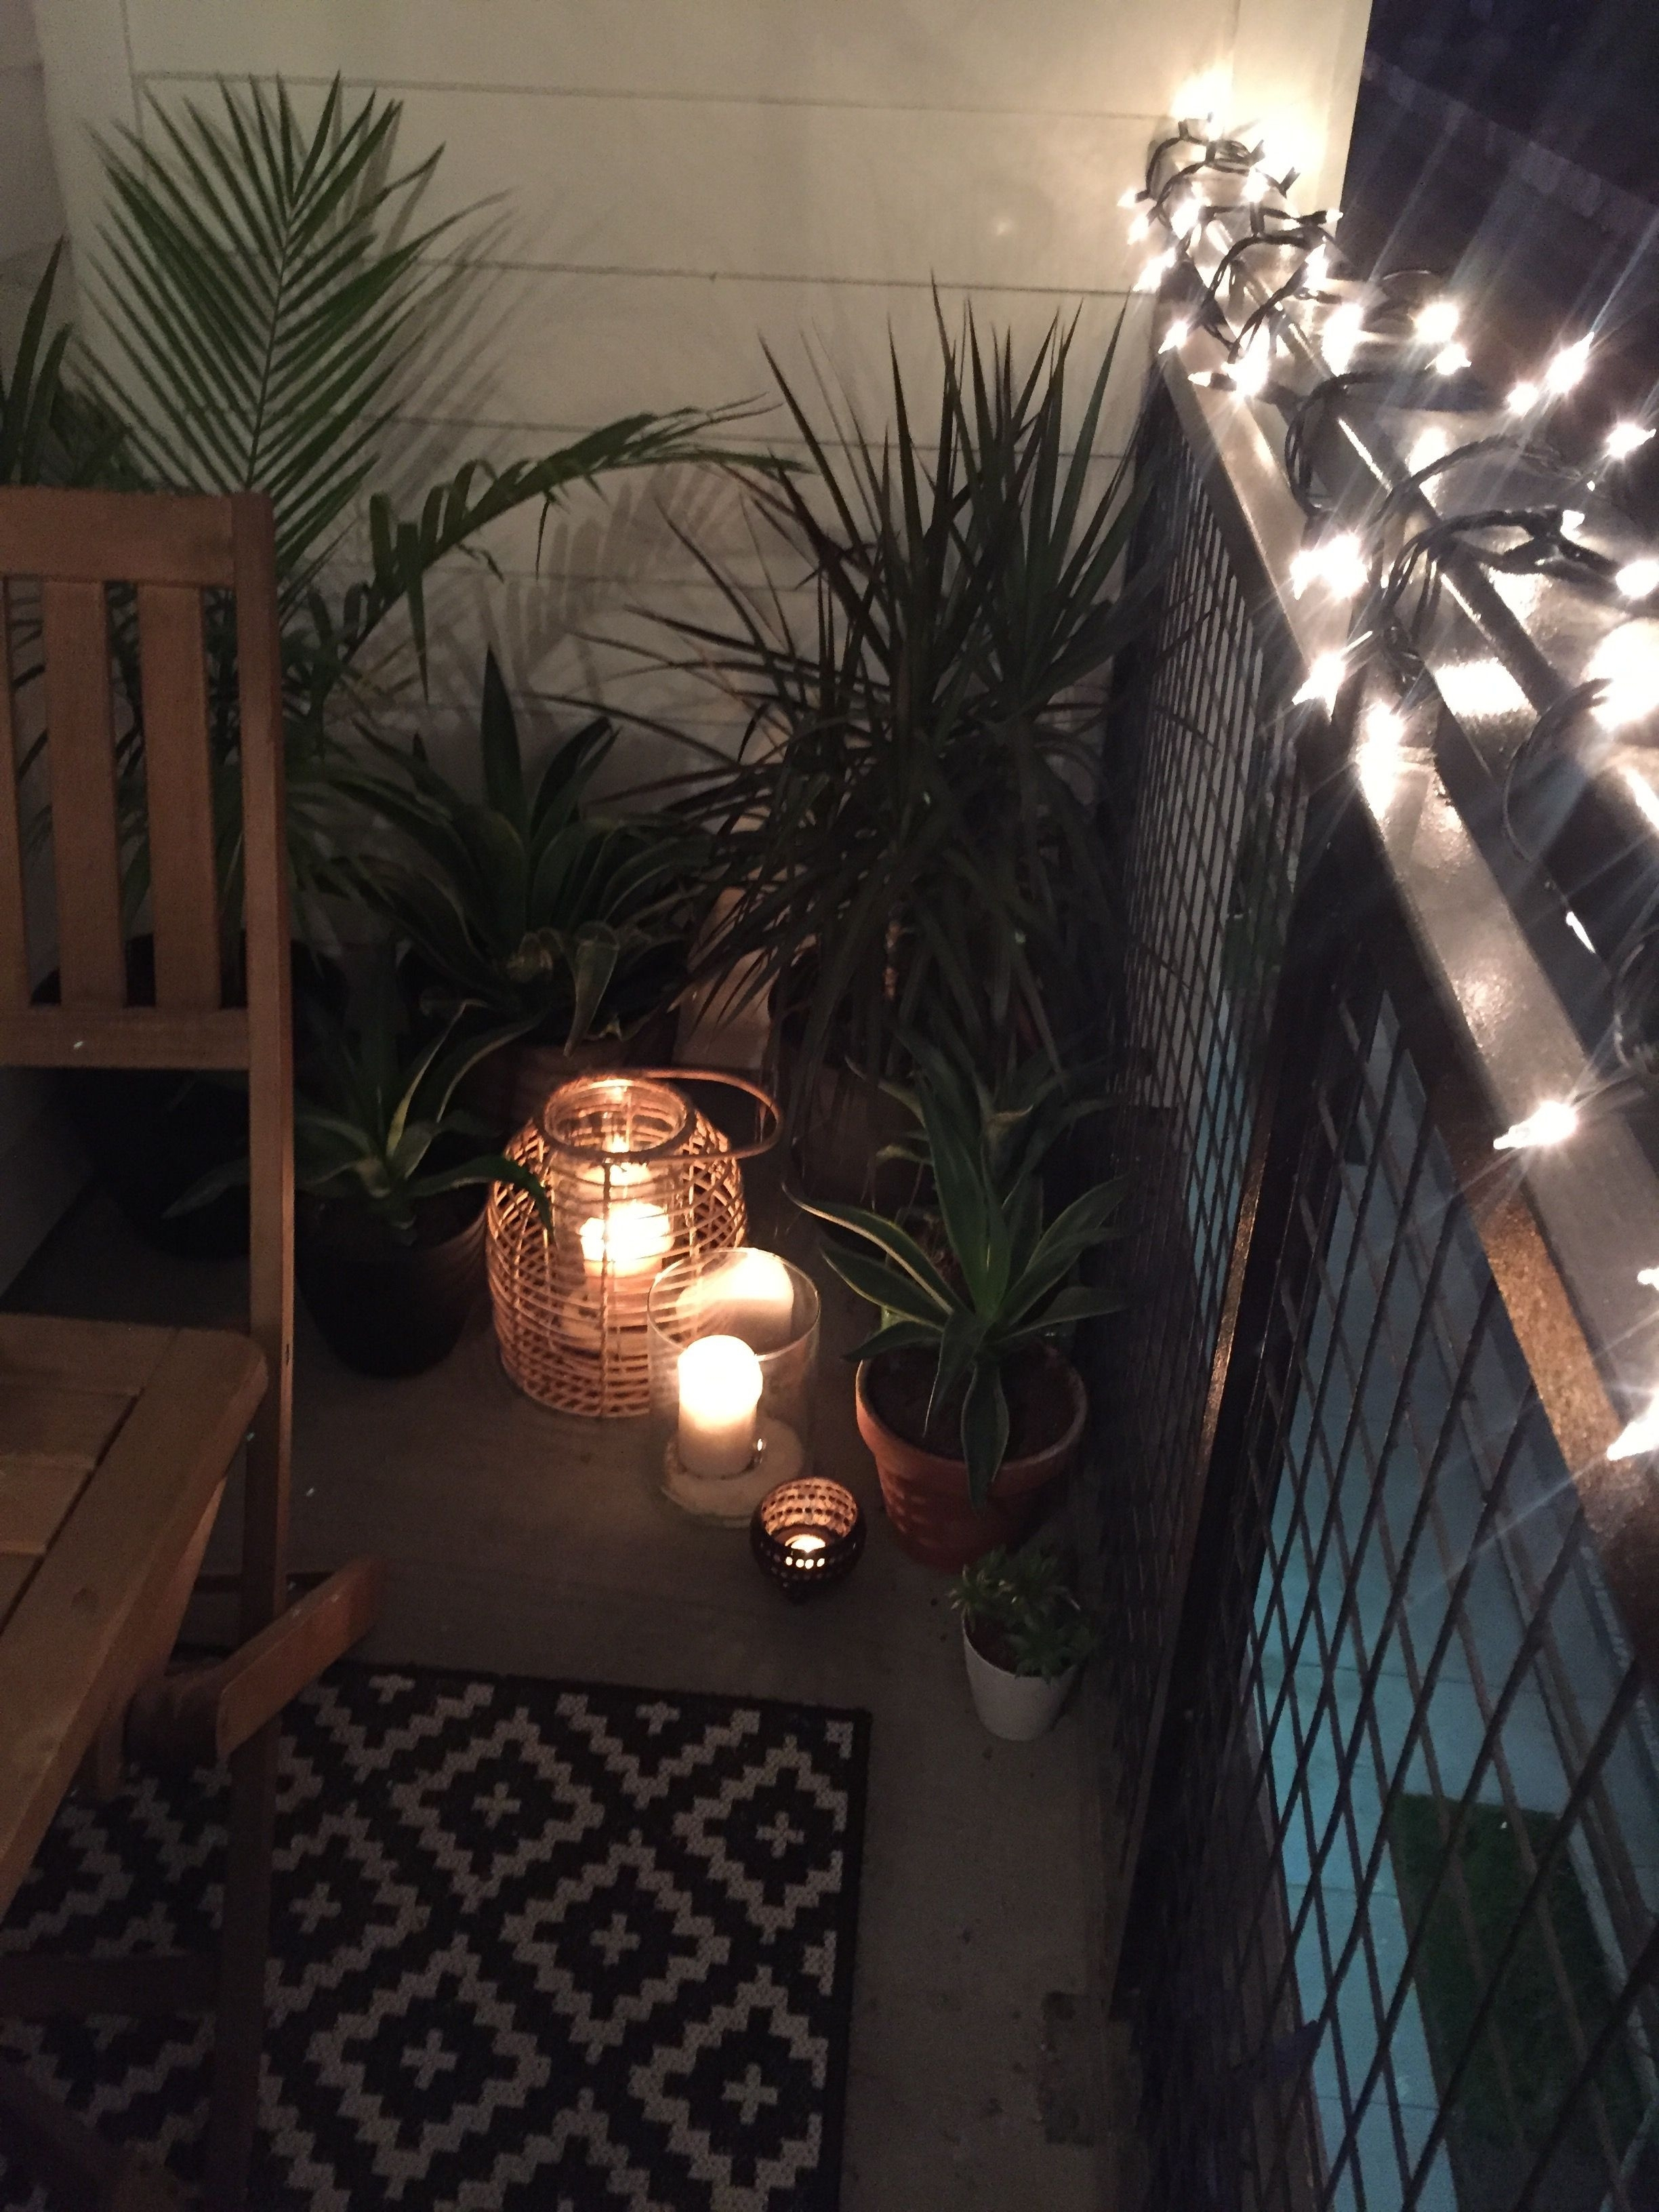 Outdoor Rope Lighting Ideas Elegant Tropical Plants Candles Lanterns inside Outdoor Rope Lanterns (Image 14 of 20)